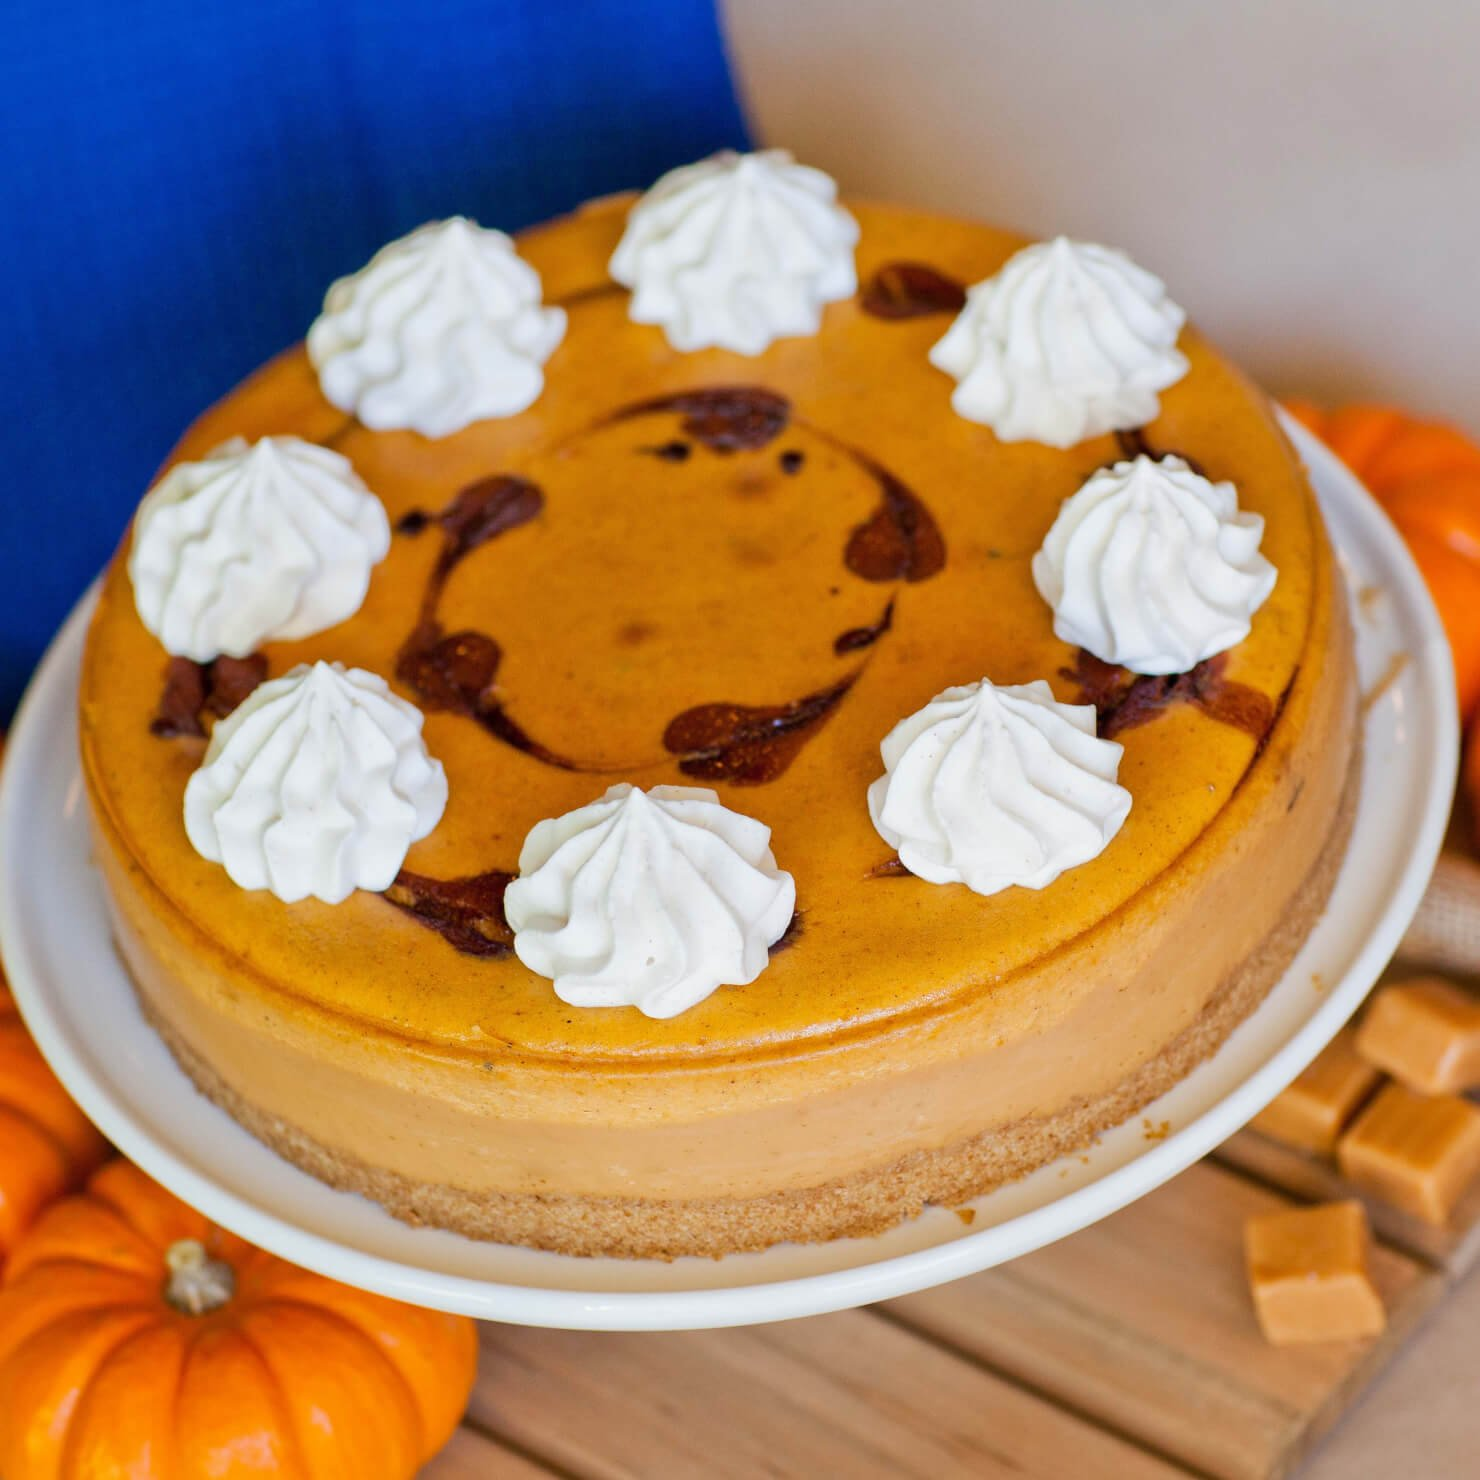 Pumpkin Caramel Cheesecake with chocolate swirls